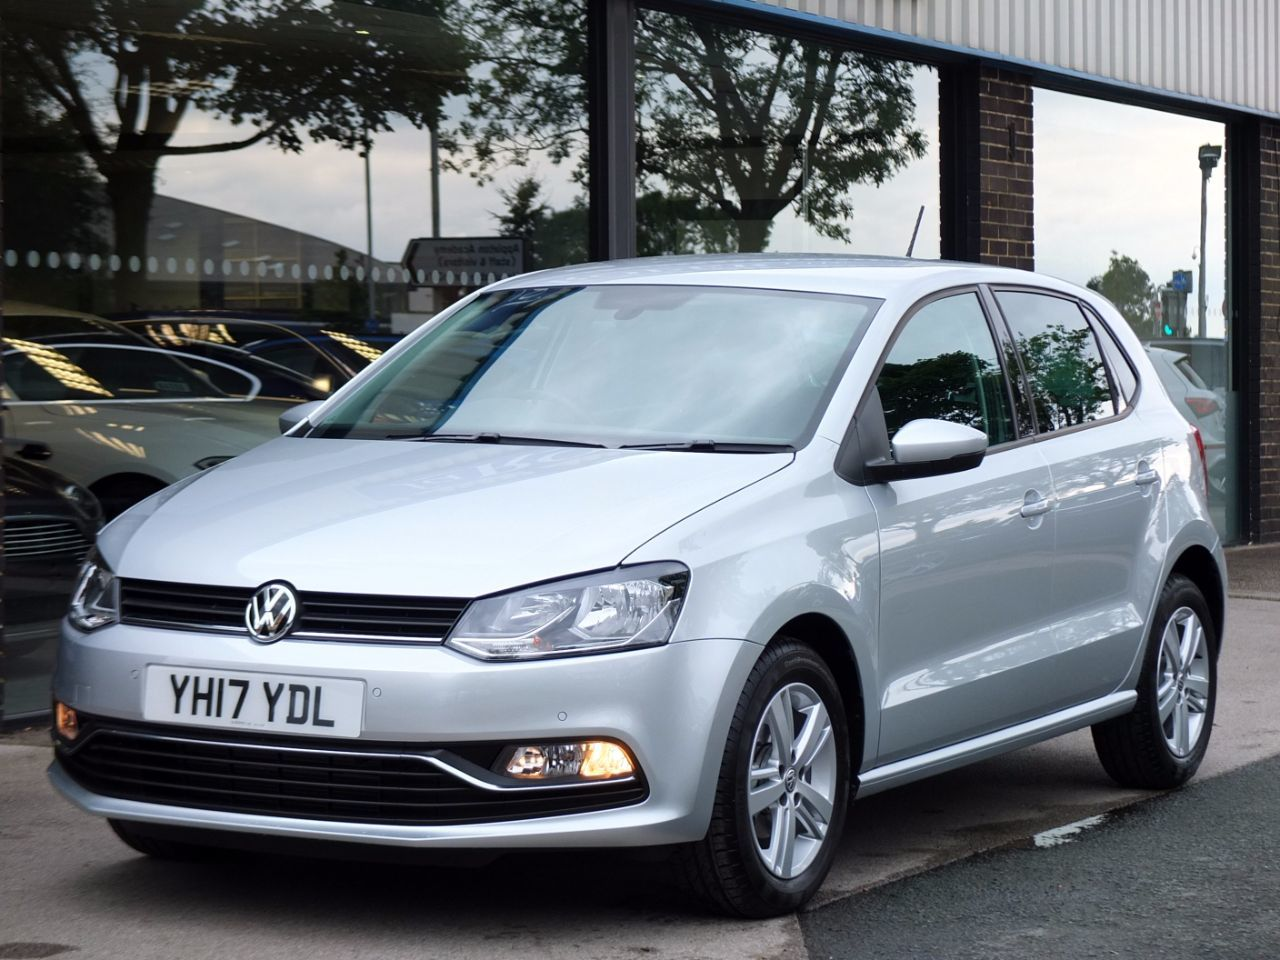 Volkswagen Polo 1.2 TSI Match Edition 5 door Hatchback Petrol Reflex Silver MetallicVolkswagen Polo 1.2 TSI Match Edition 5 door Hatchback Petrol Reflex Silver Metallic at fa Roper Ltd Bradford